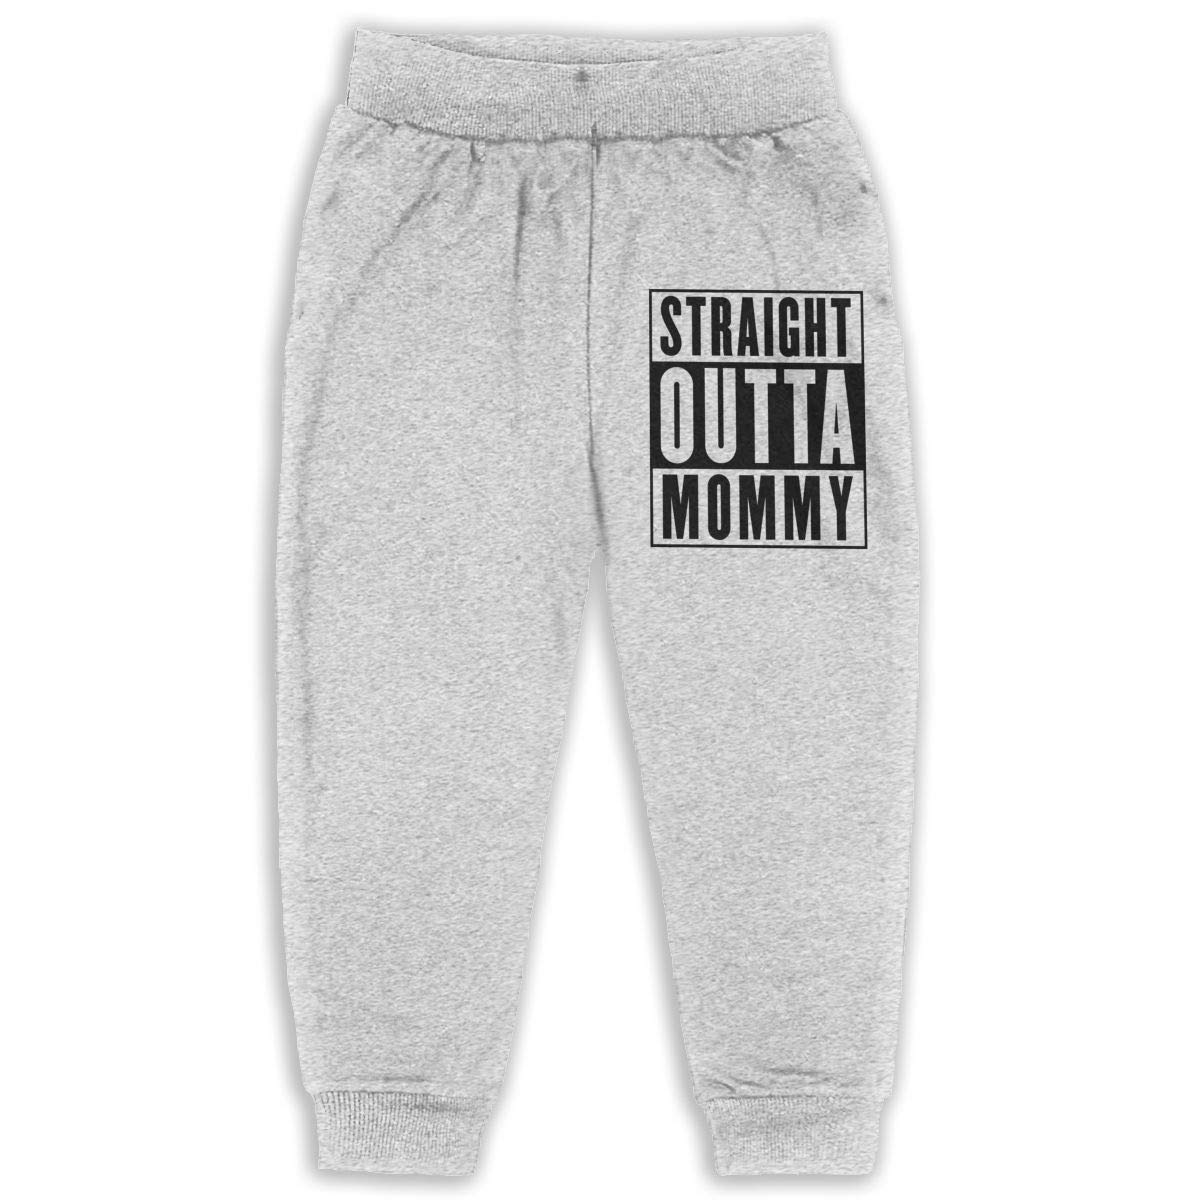 Cqelng Oii Straight Outta Mommy Truck 2-6T Boys Active Joggers Soft Pant